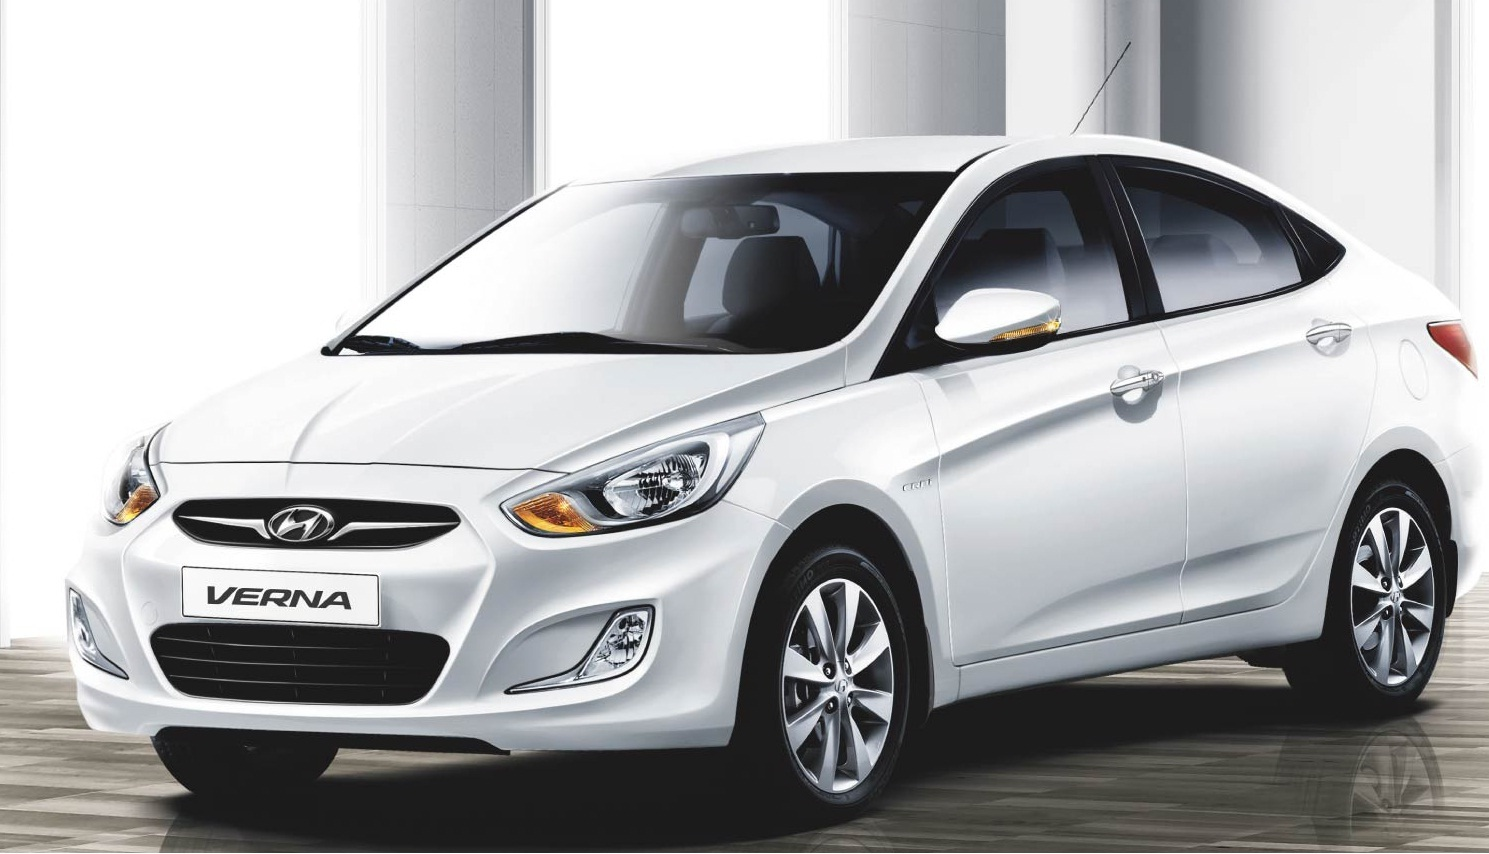 New Hyundai Fluidic Verna Test Drive Review The Authentic Car People